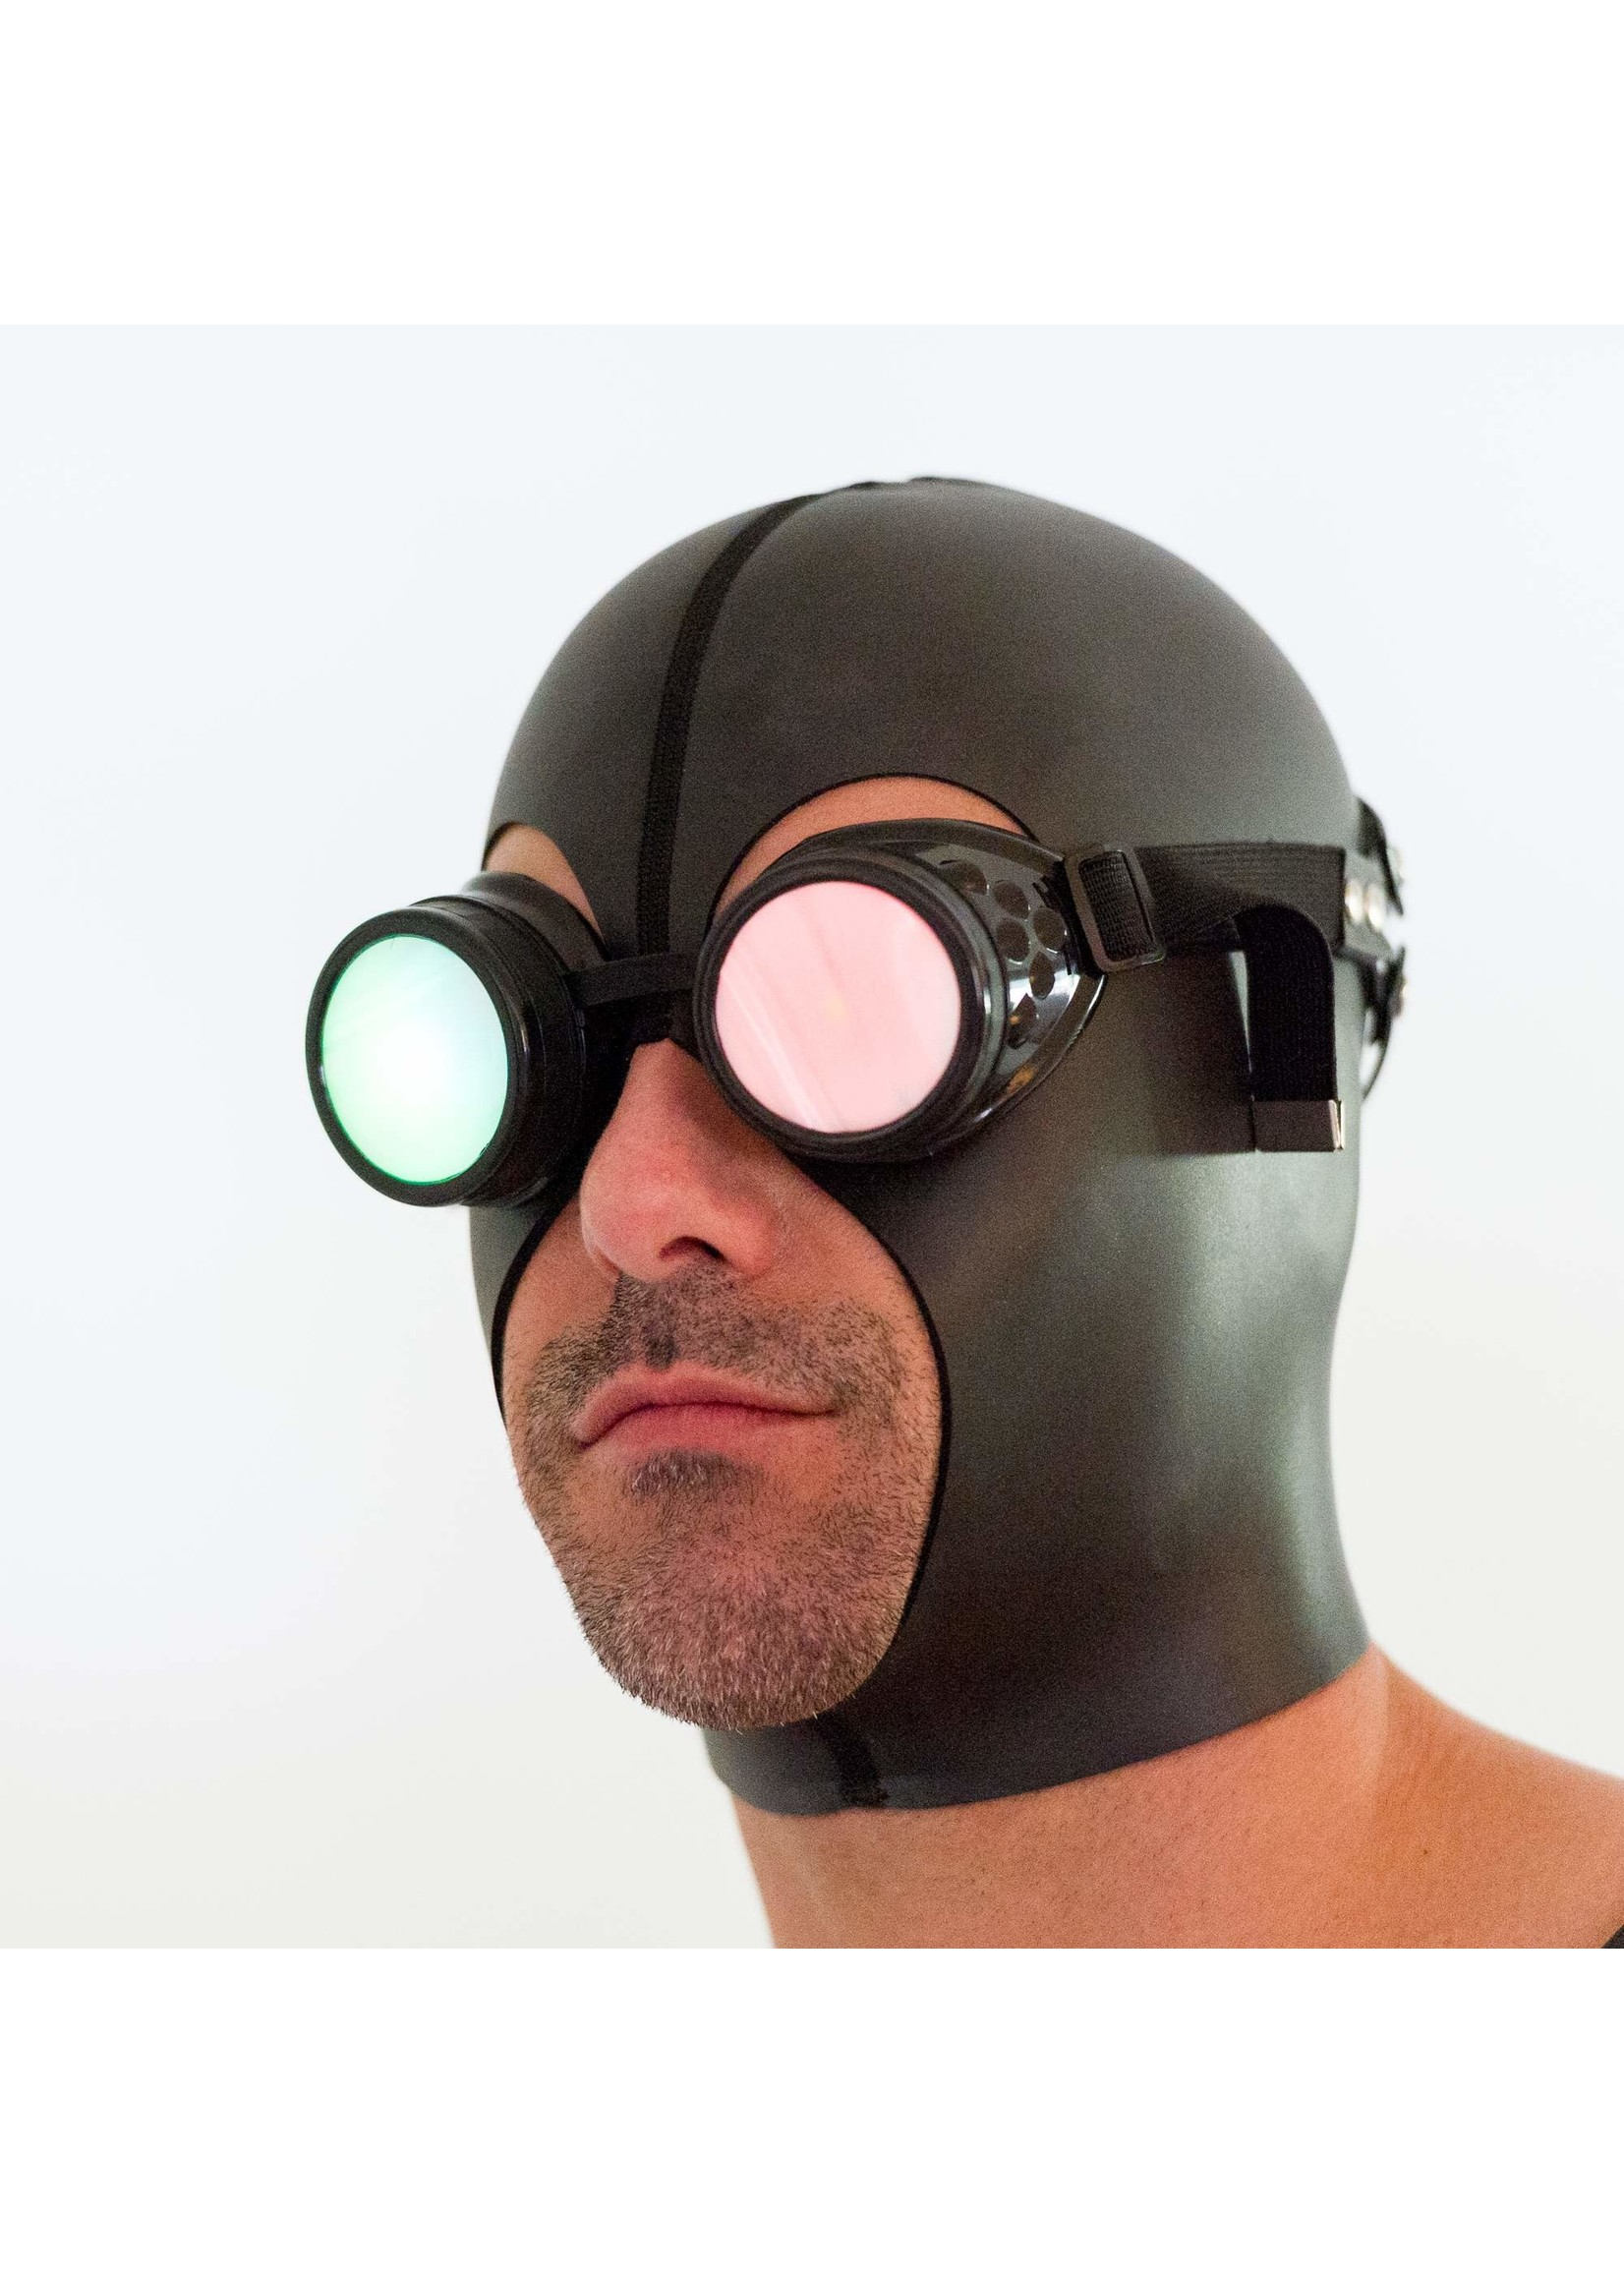 665 Leather 665 Mind Fuck Blindfold Goggles